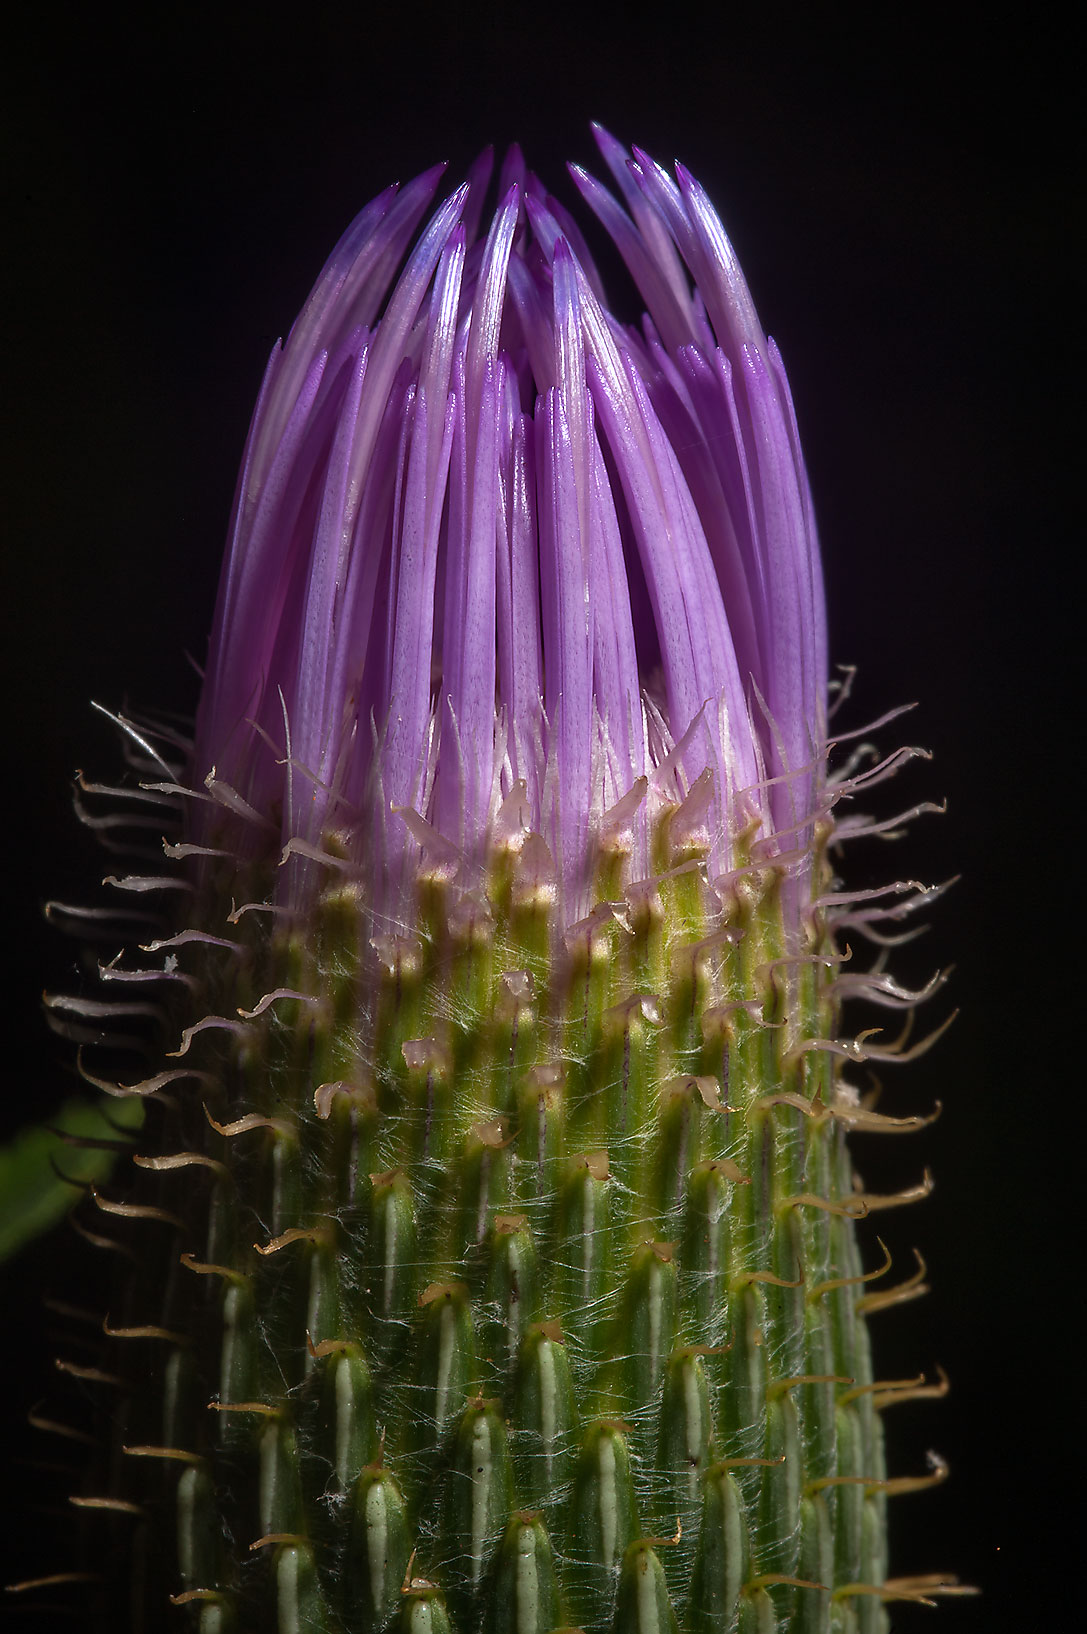 Flower bud of summer-blooming thistle (Cirsium...Creek Park. College Station, Texas